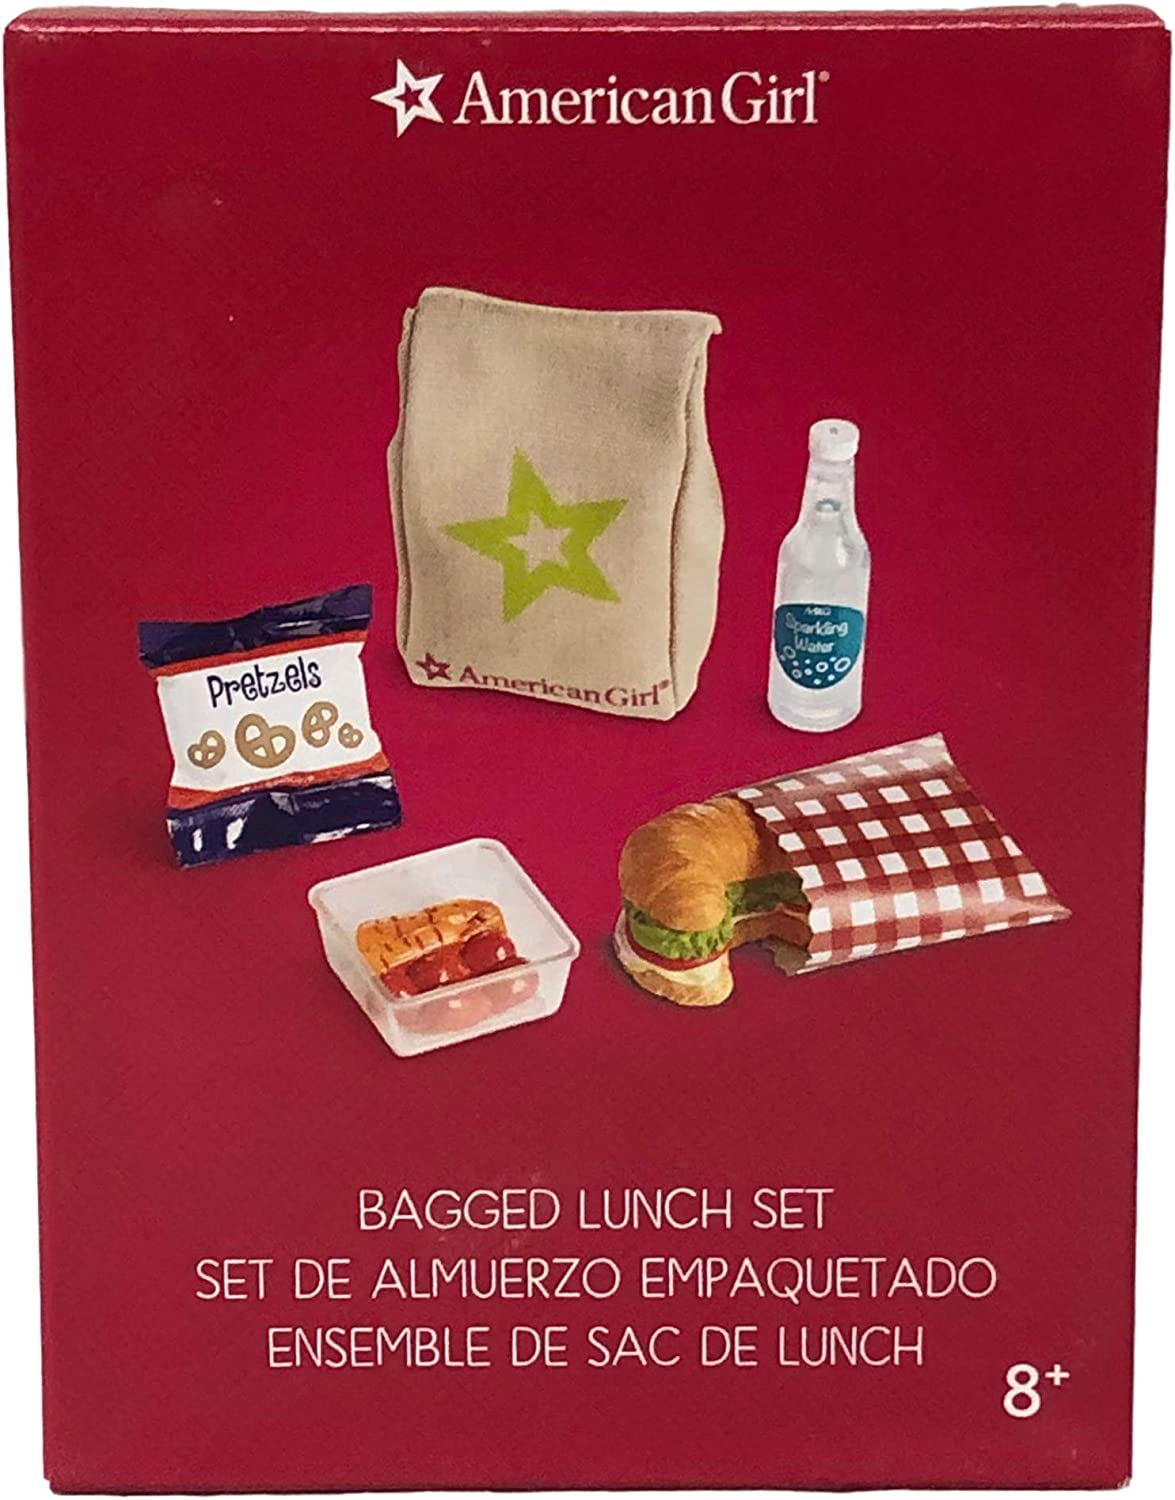 """American Girl 18/"""" doll BAG of PRETZELS from BAGGED LUNCH set NEW!"""